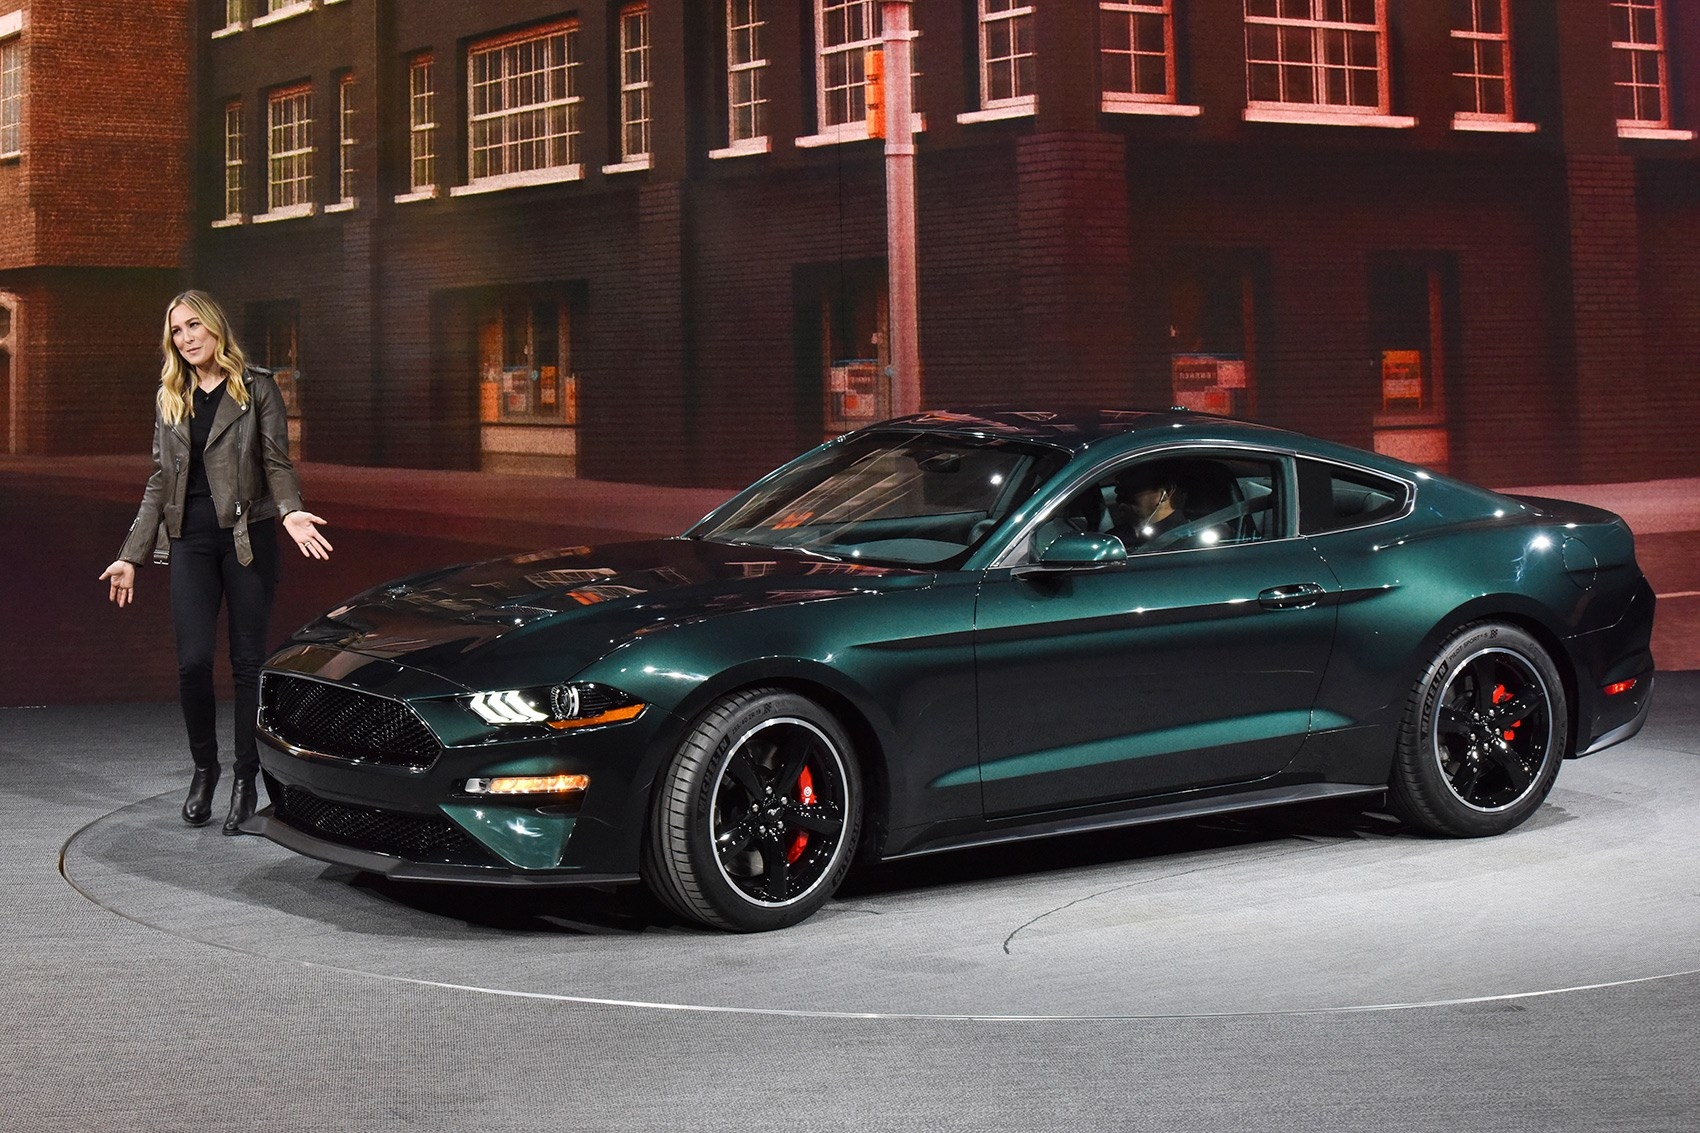 2018 Molly Mcqueen Grand Daughter Of Bullitt Actor Steve Unveils The New 2019 Ford Mustang In Detroit